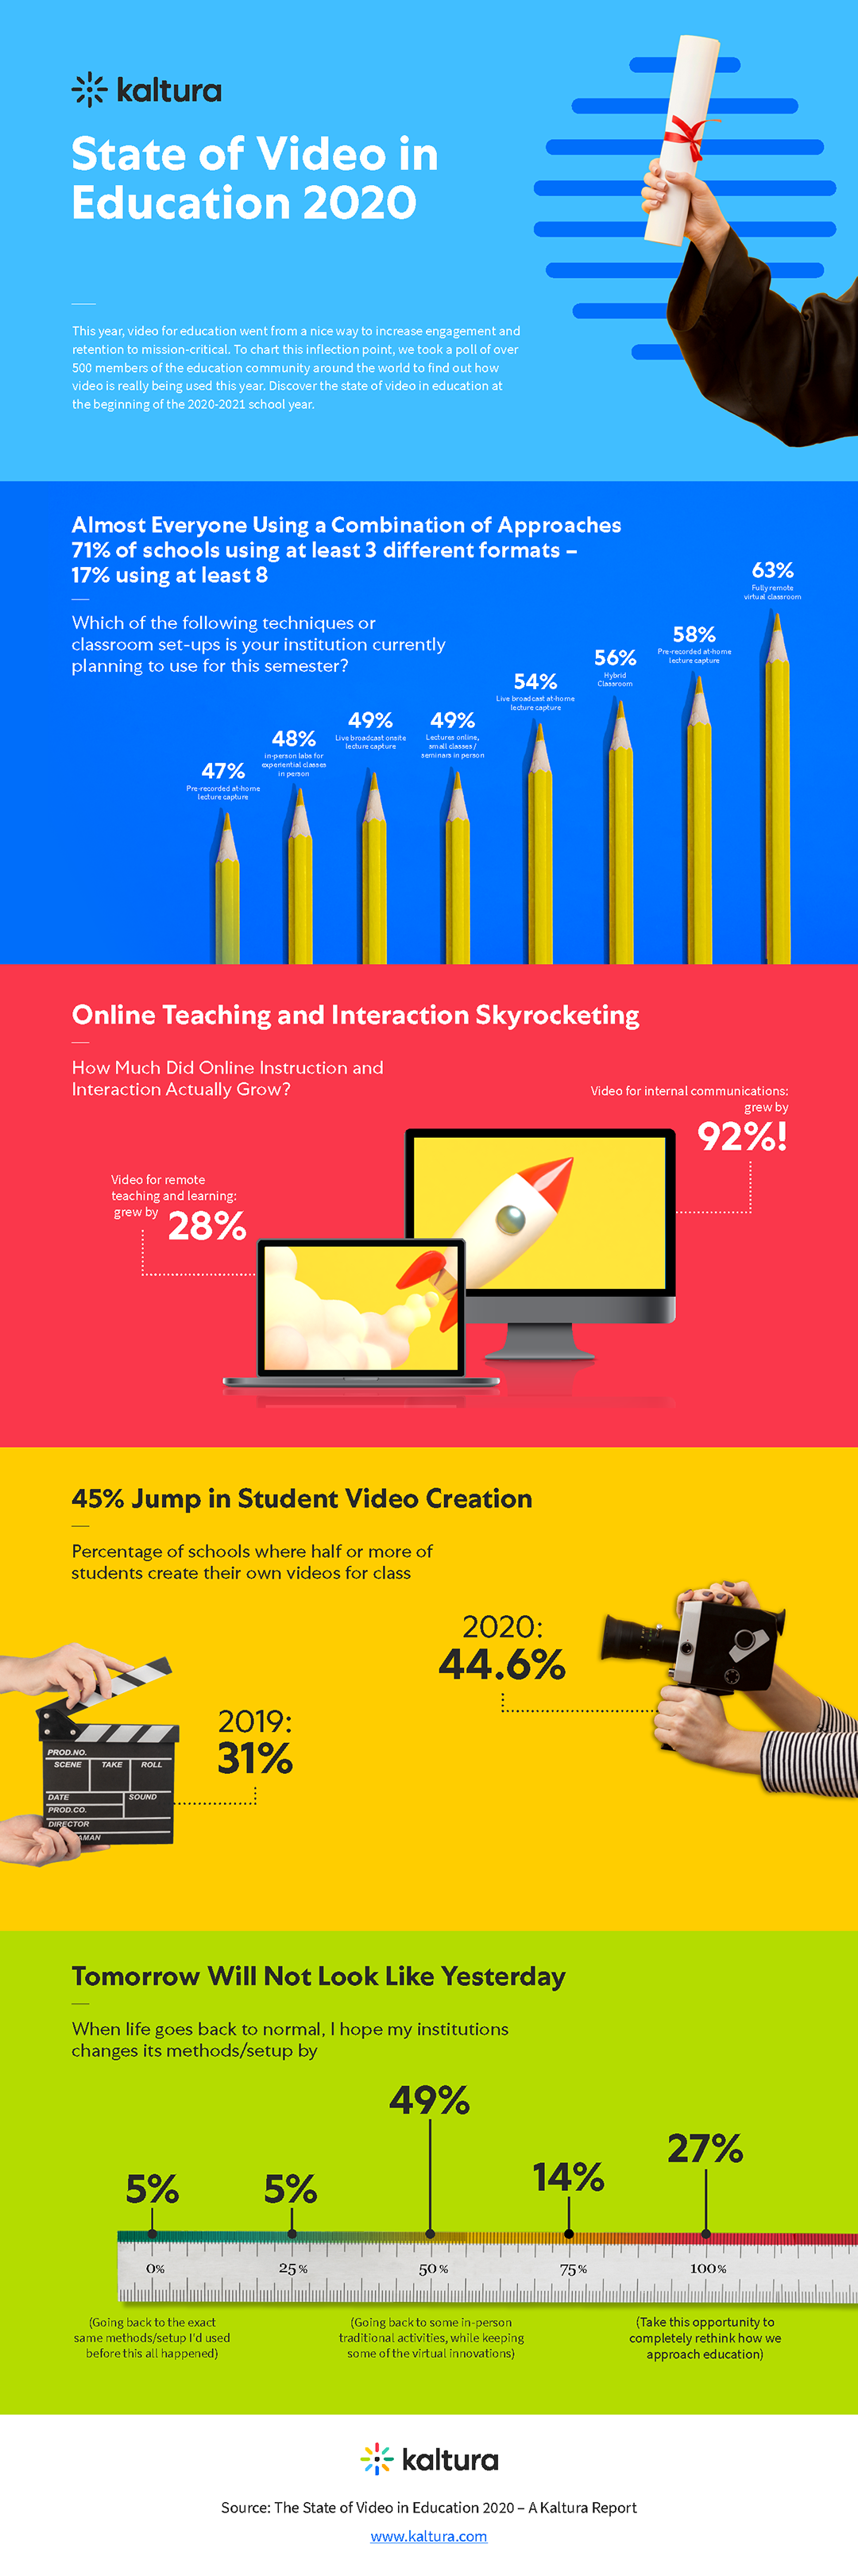 survey results about how educators use video for education in fall 2020